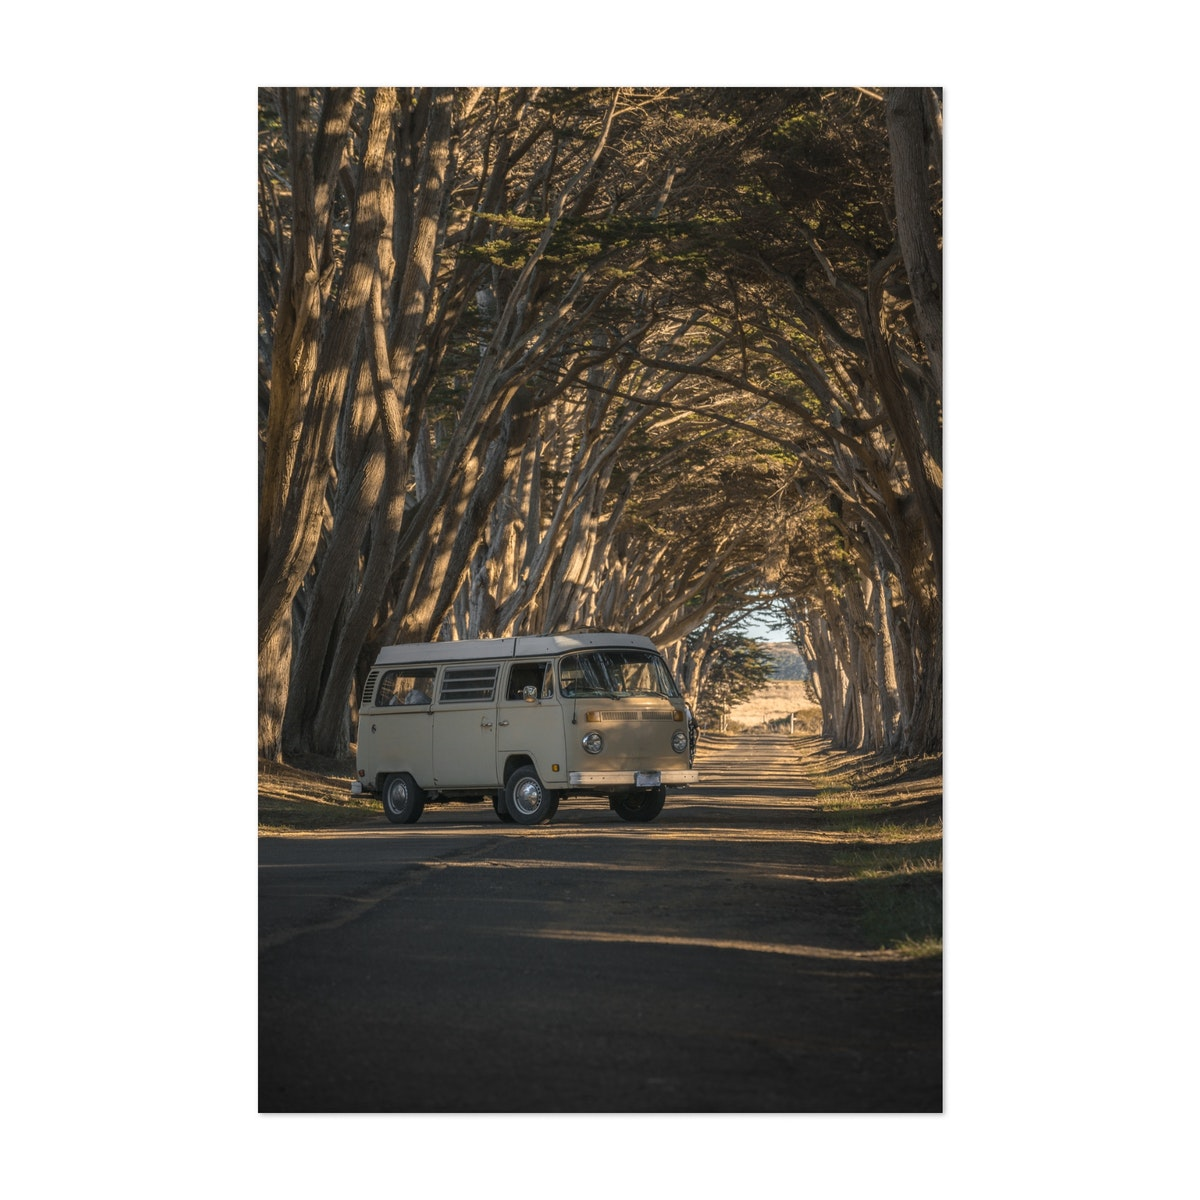 Vintage Bus in Tree Tunnel